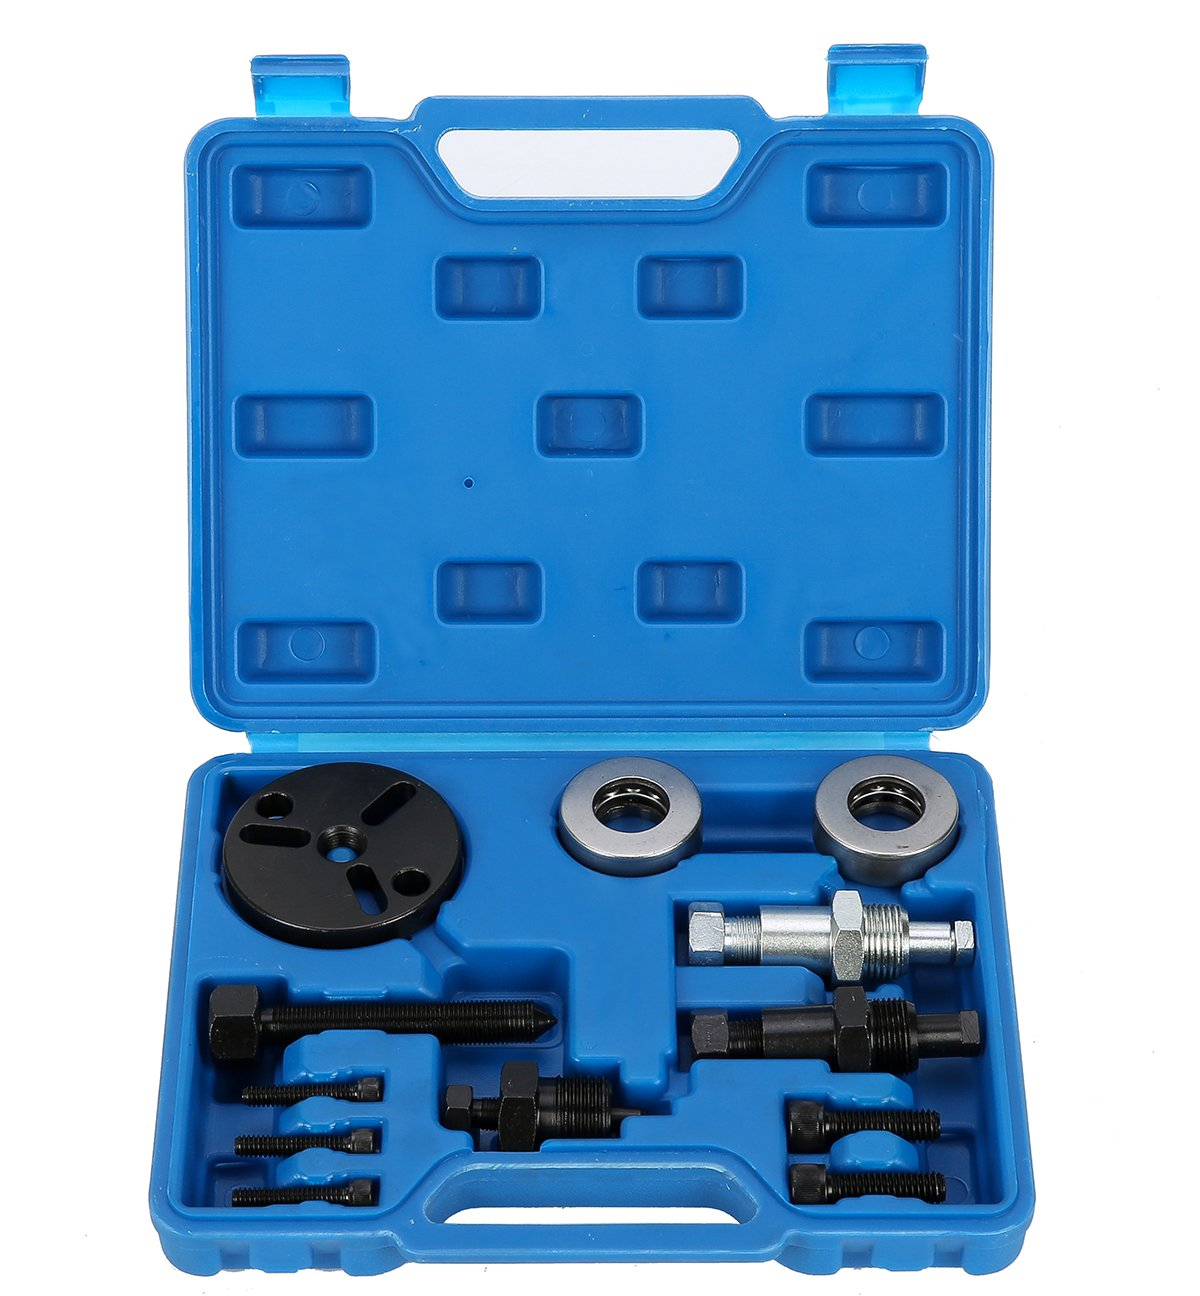 8MILELAKE Air Compressor Clutch Rebuild Removal Tool Kit AC Clutch Puller GM, Ford, Chrysler Auto Air Conditioning Remover Installer